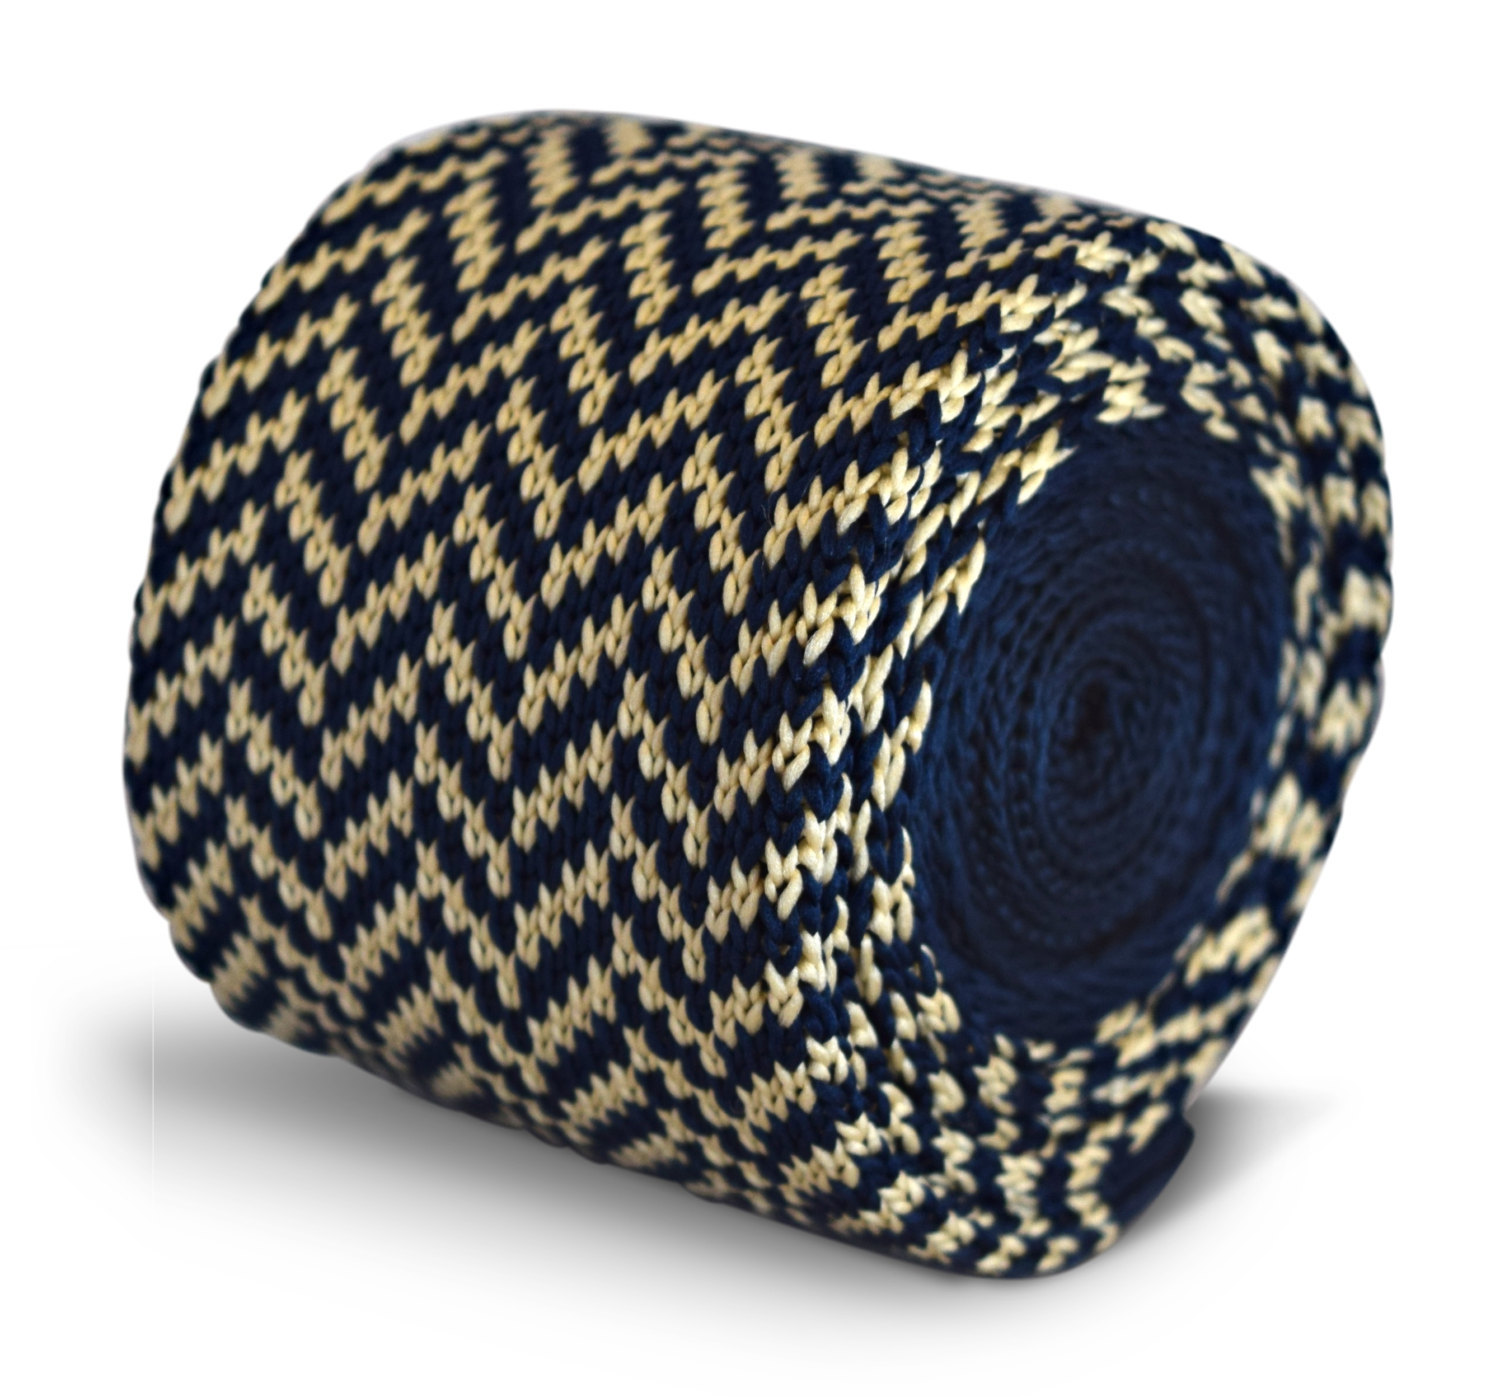 navy blue and ivory cream herringbone knitted skinny tie by Frederick Thomas FT3